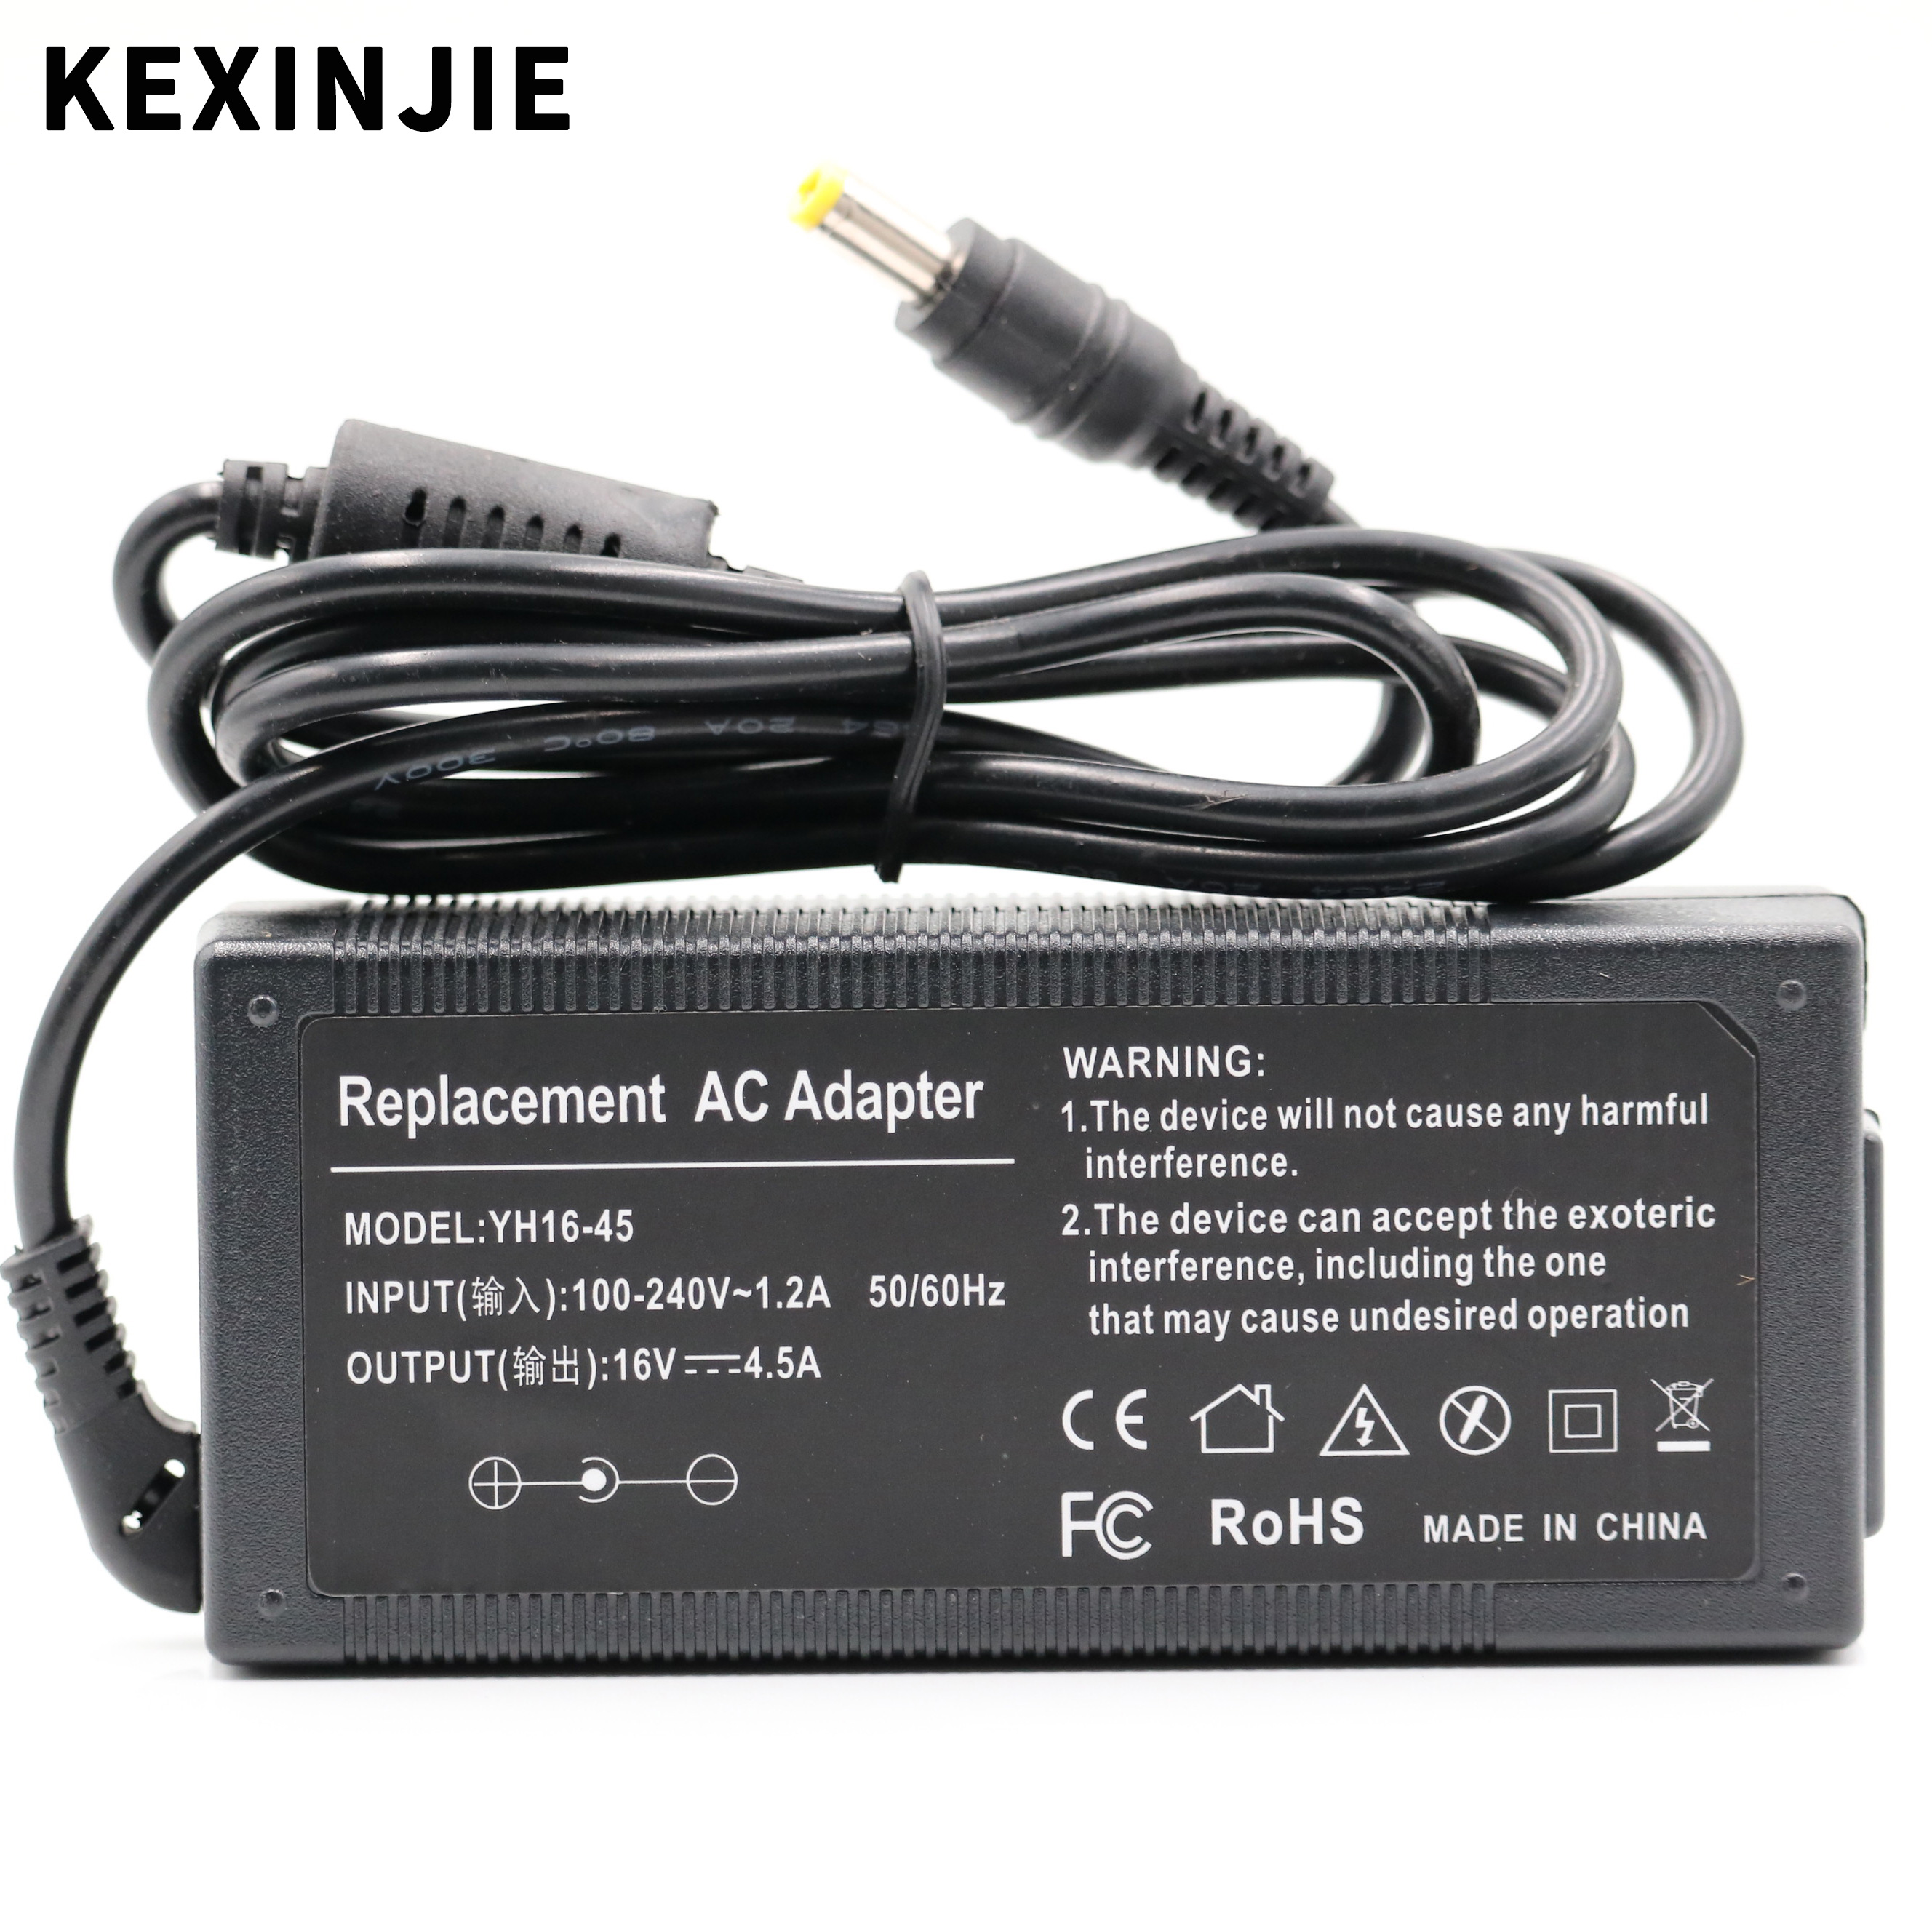 16V 4.5A 72w Universal AC Adapter Battery Charger For IBM THINKPAD T43 A31 X31 R40 T21 T41 T42 Laptop Free Shipping